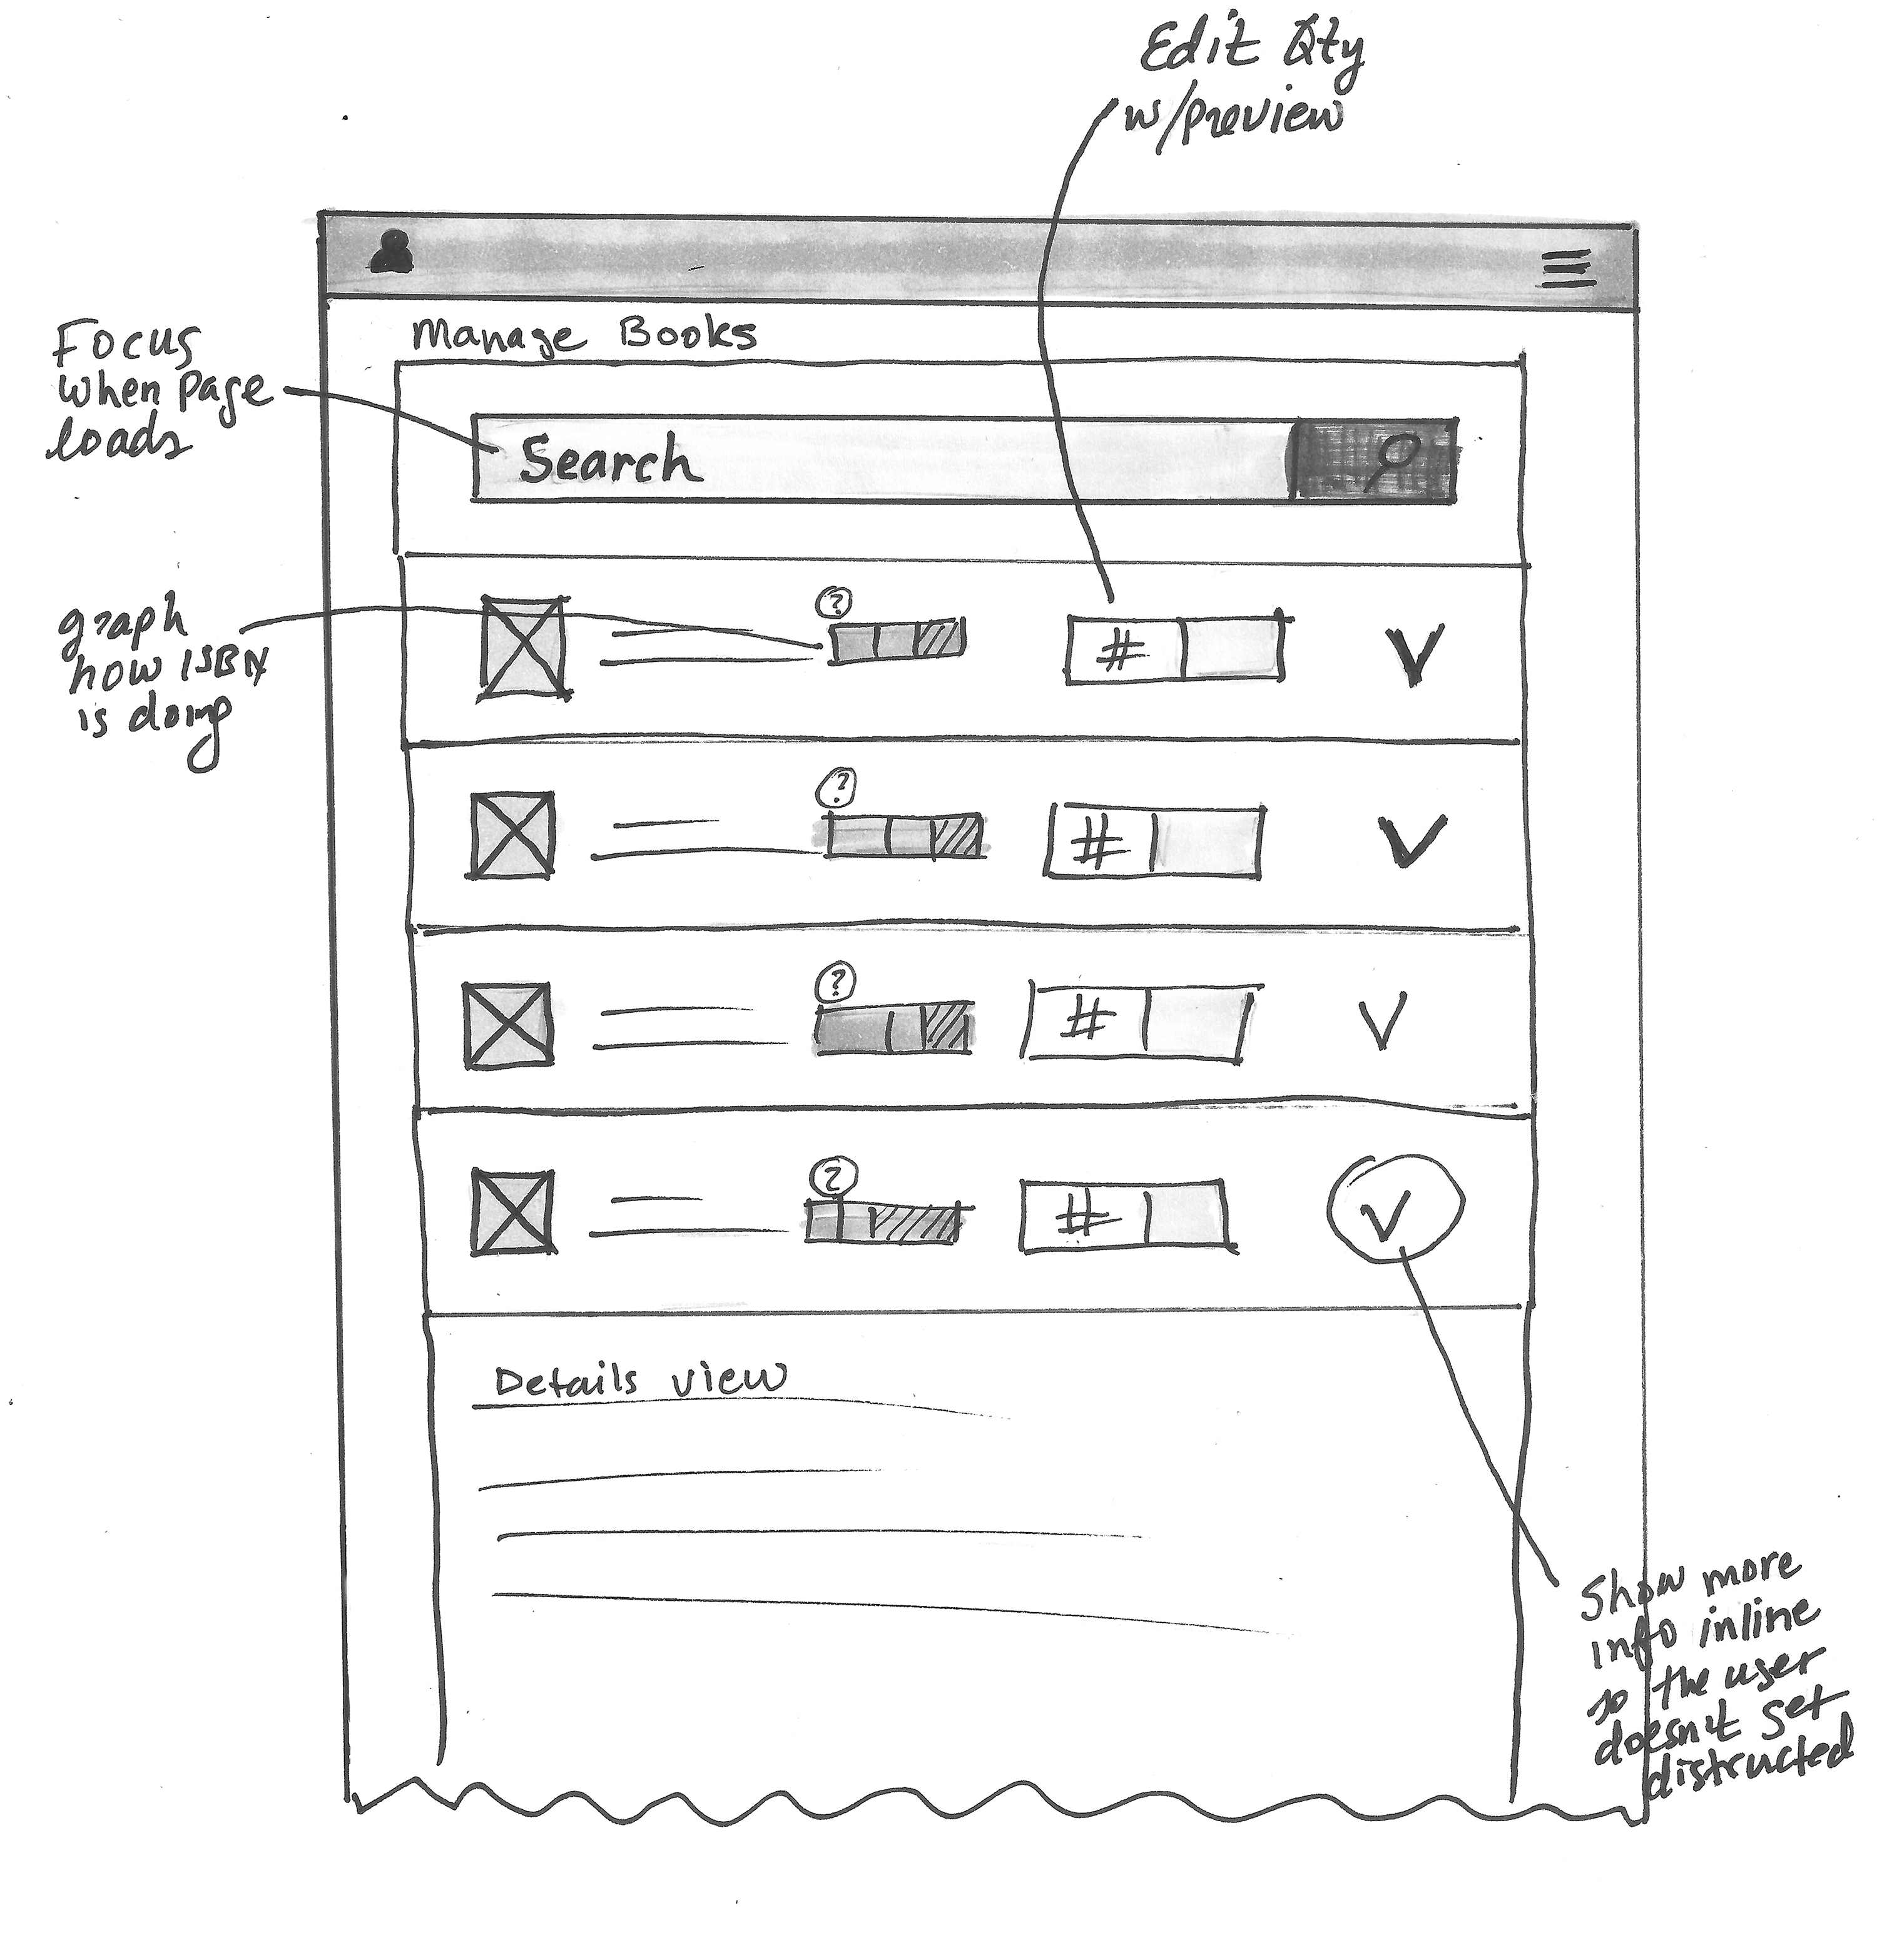 IMS Wireframe